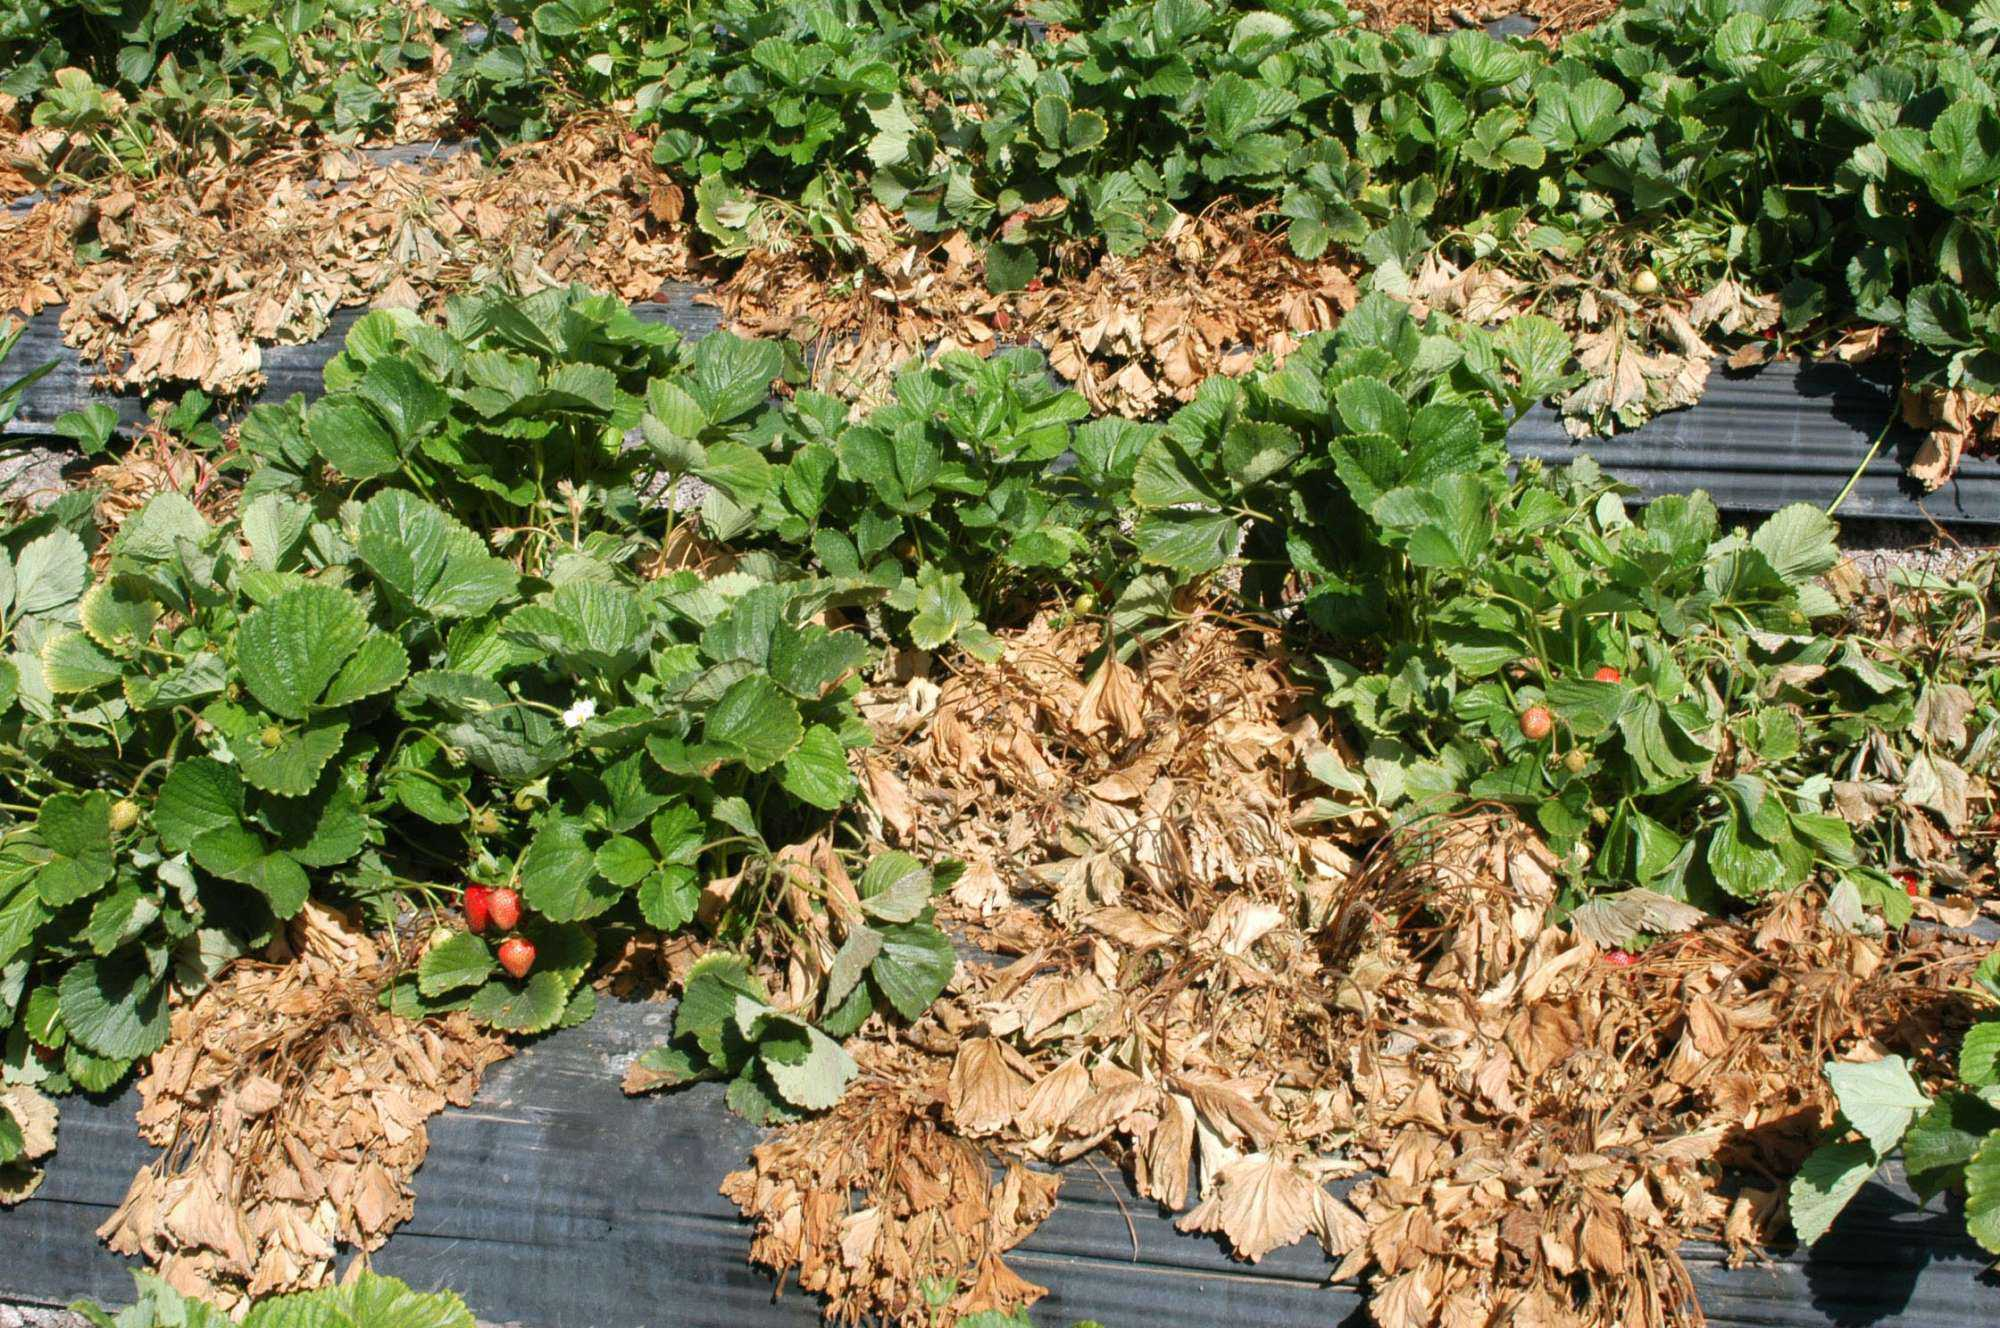 View From The West: Fumigant Restrictions Challenge Growers